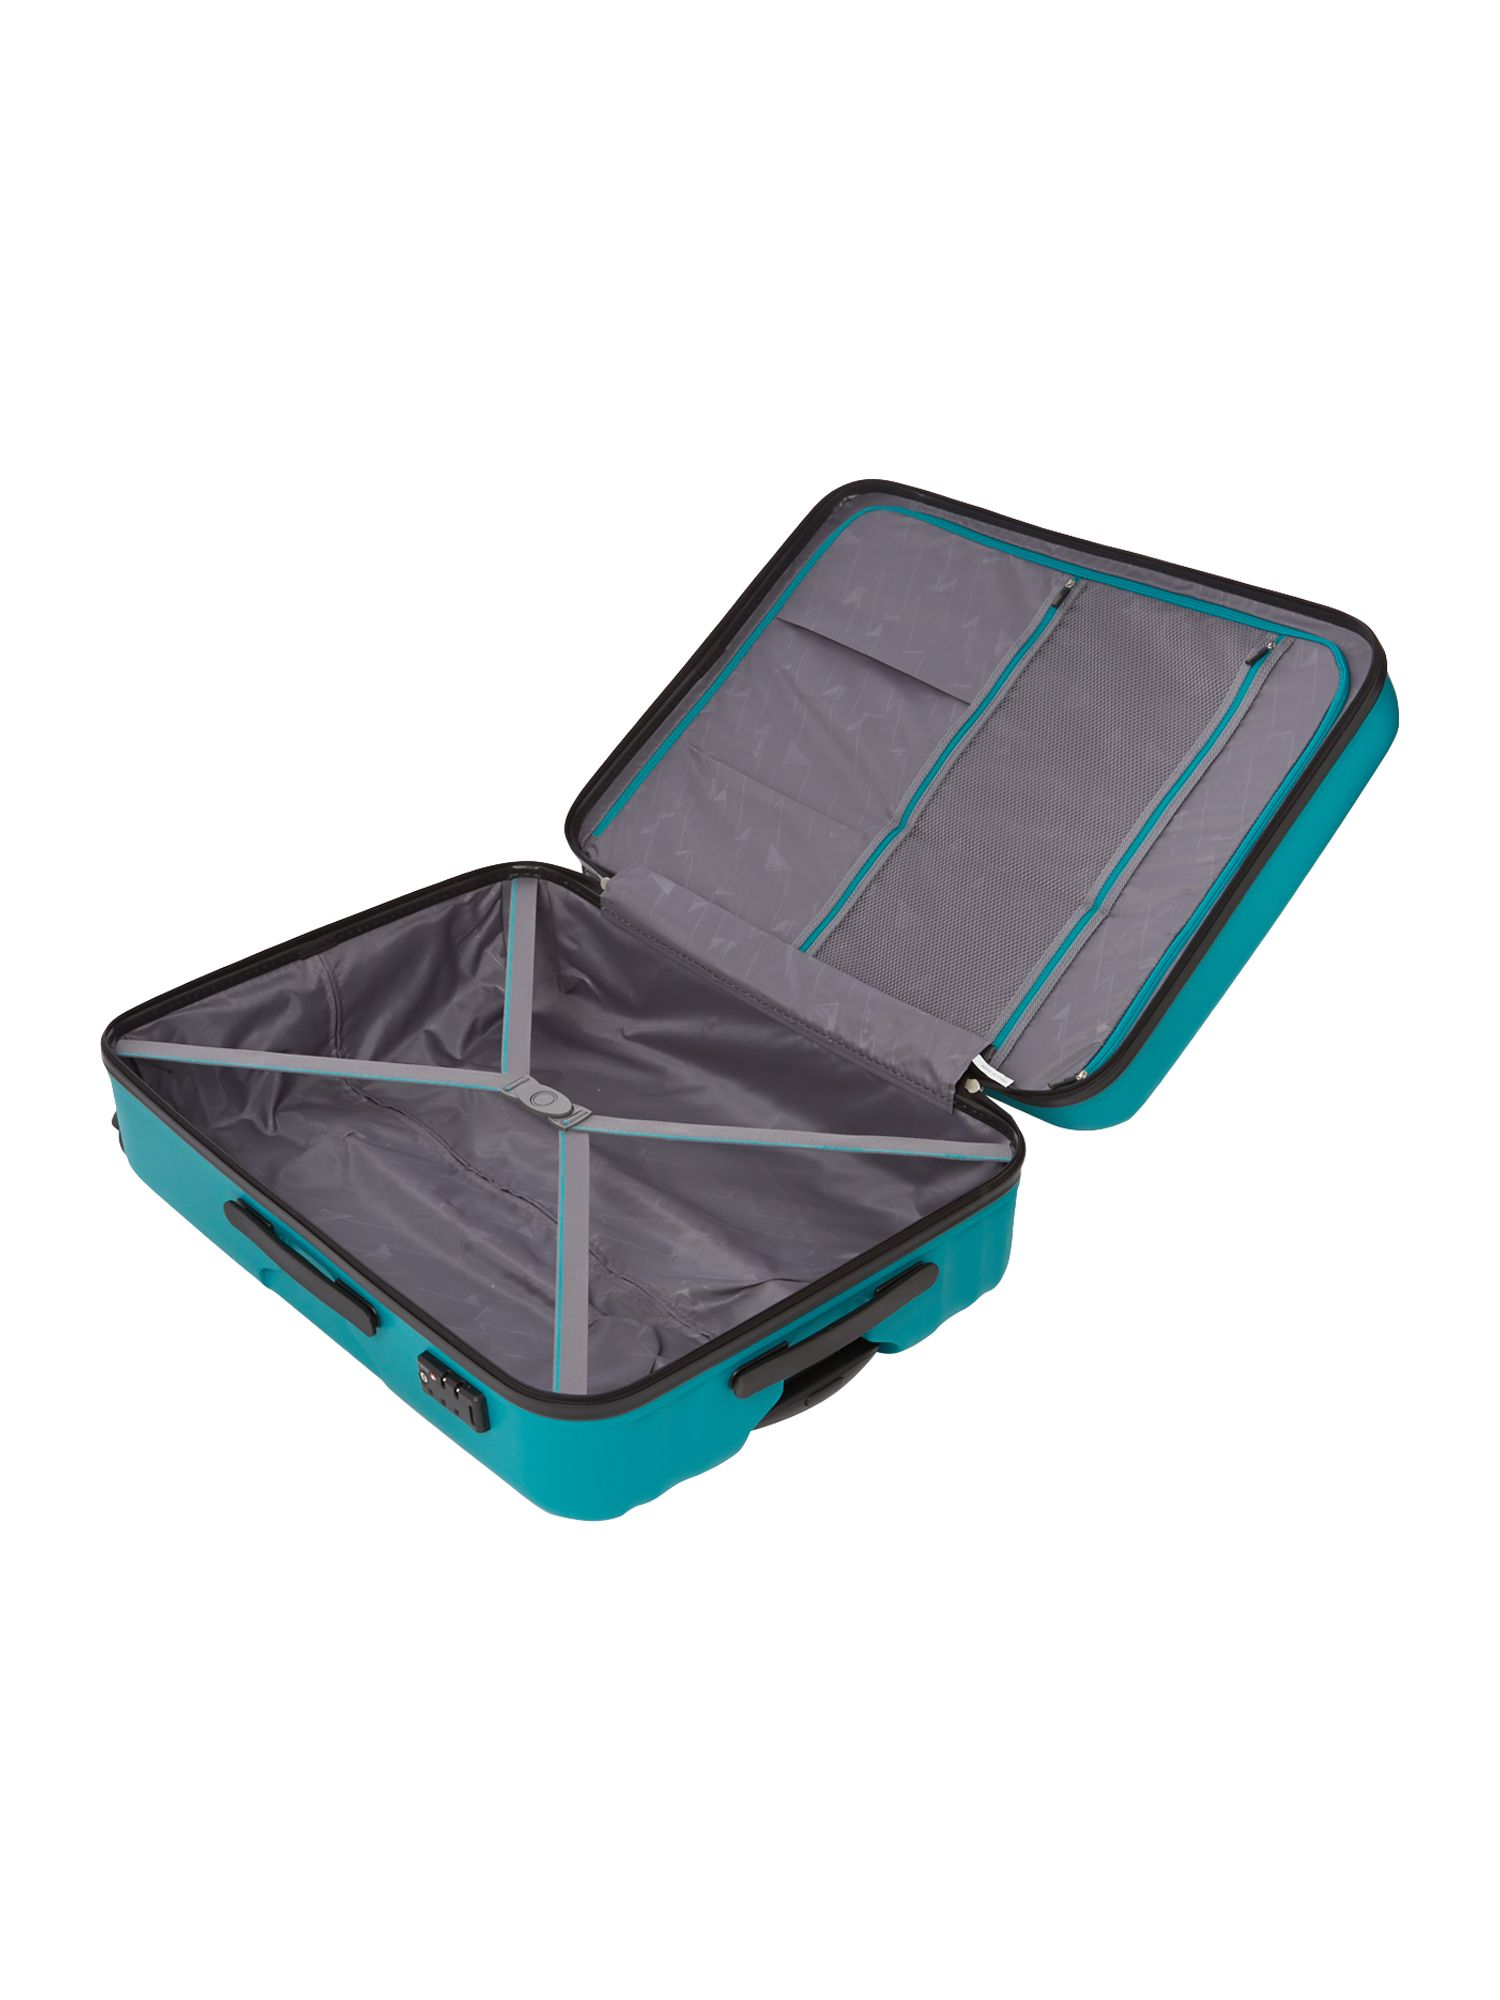 Moblite teal 4 wheel large case